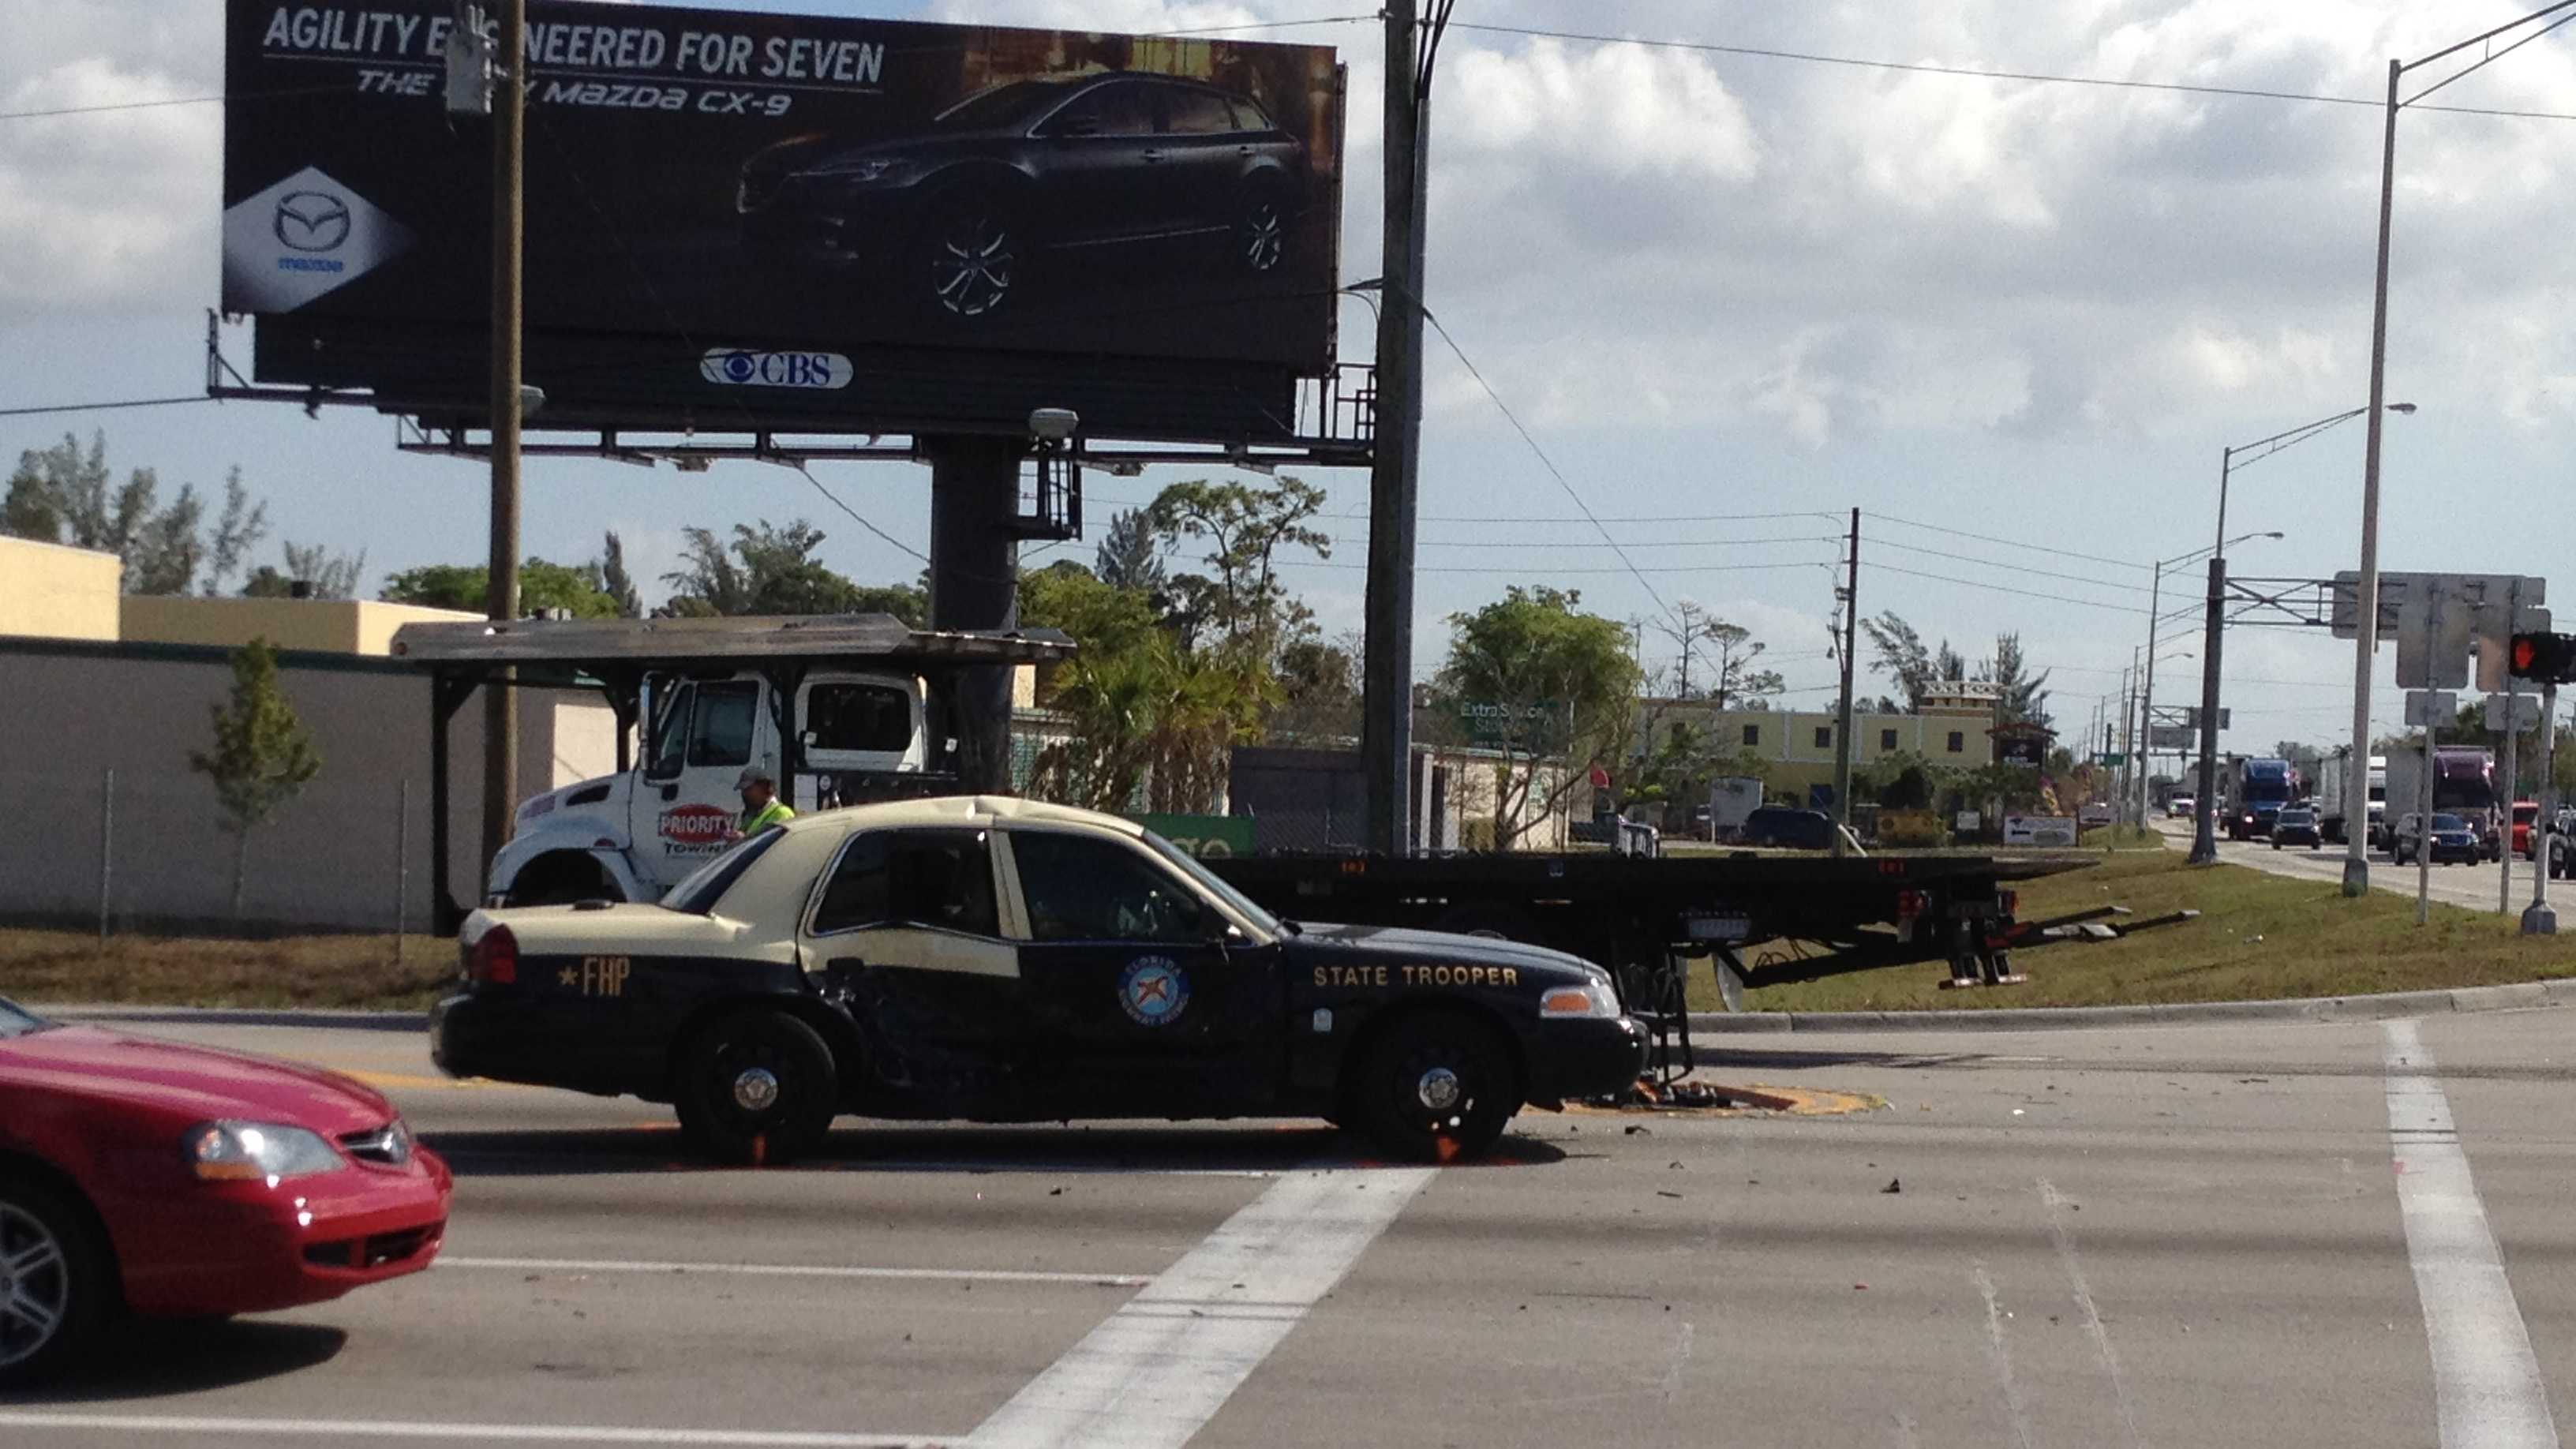 This Florida Highway Patrol cruiser was involved in a collision on Southern Boulevard.